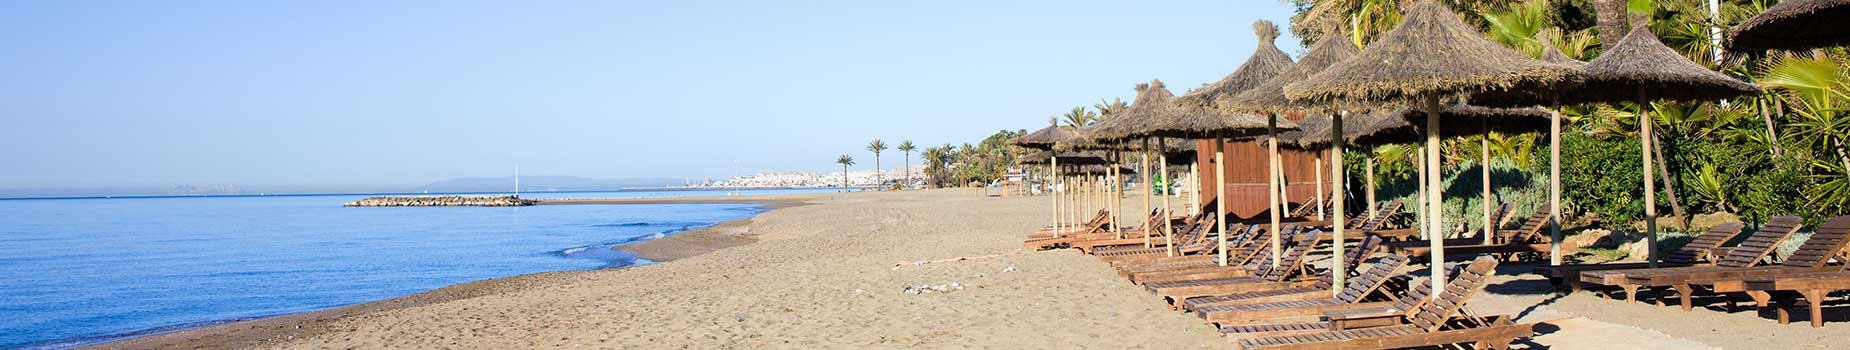 All Inclusive Costa del Sol